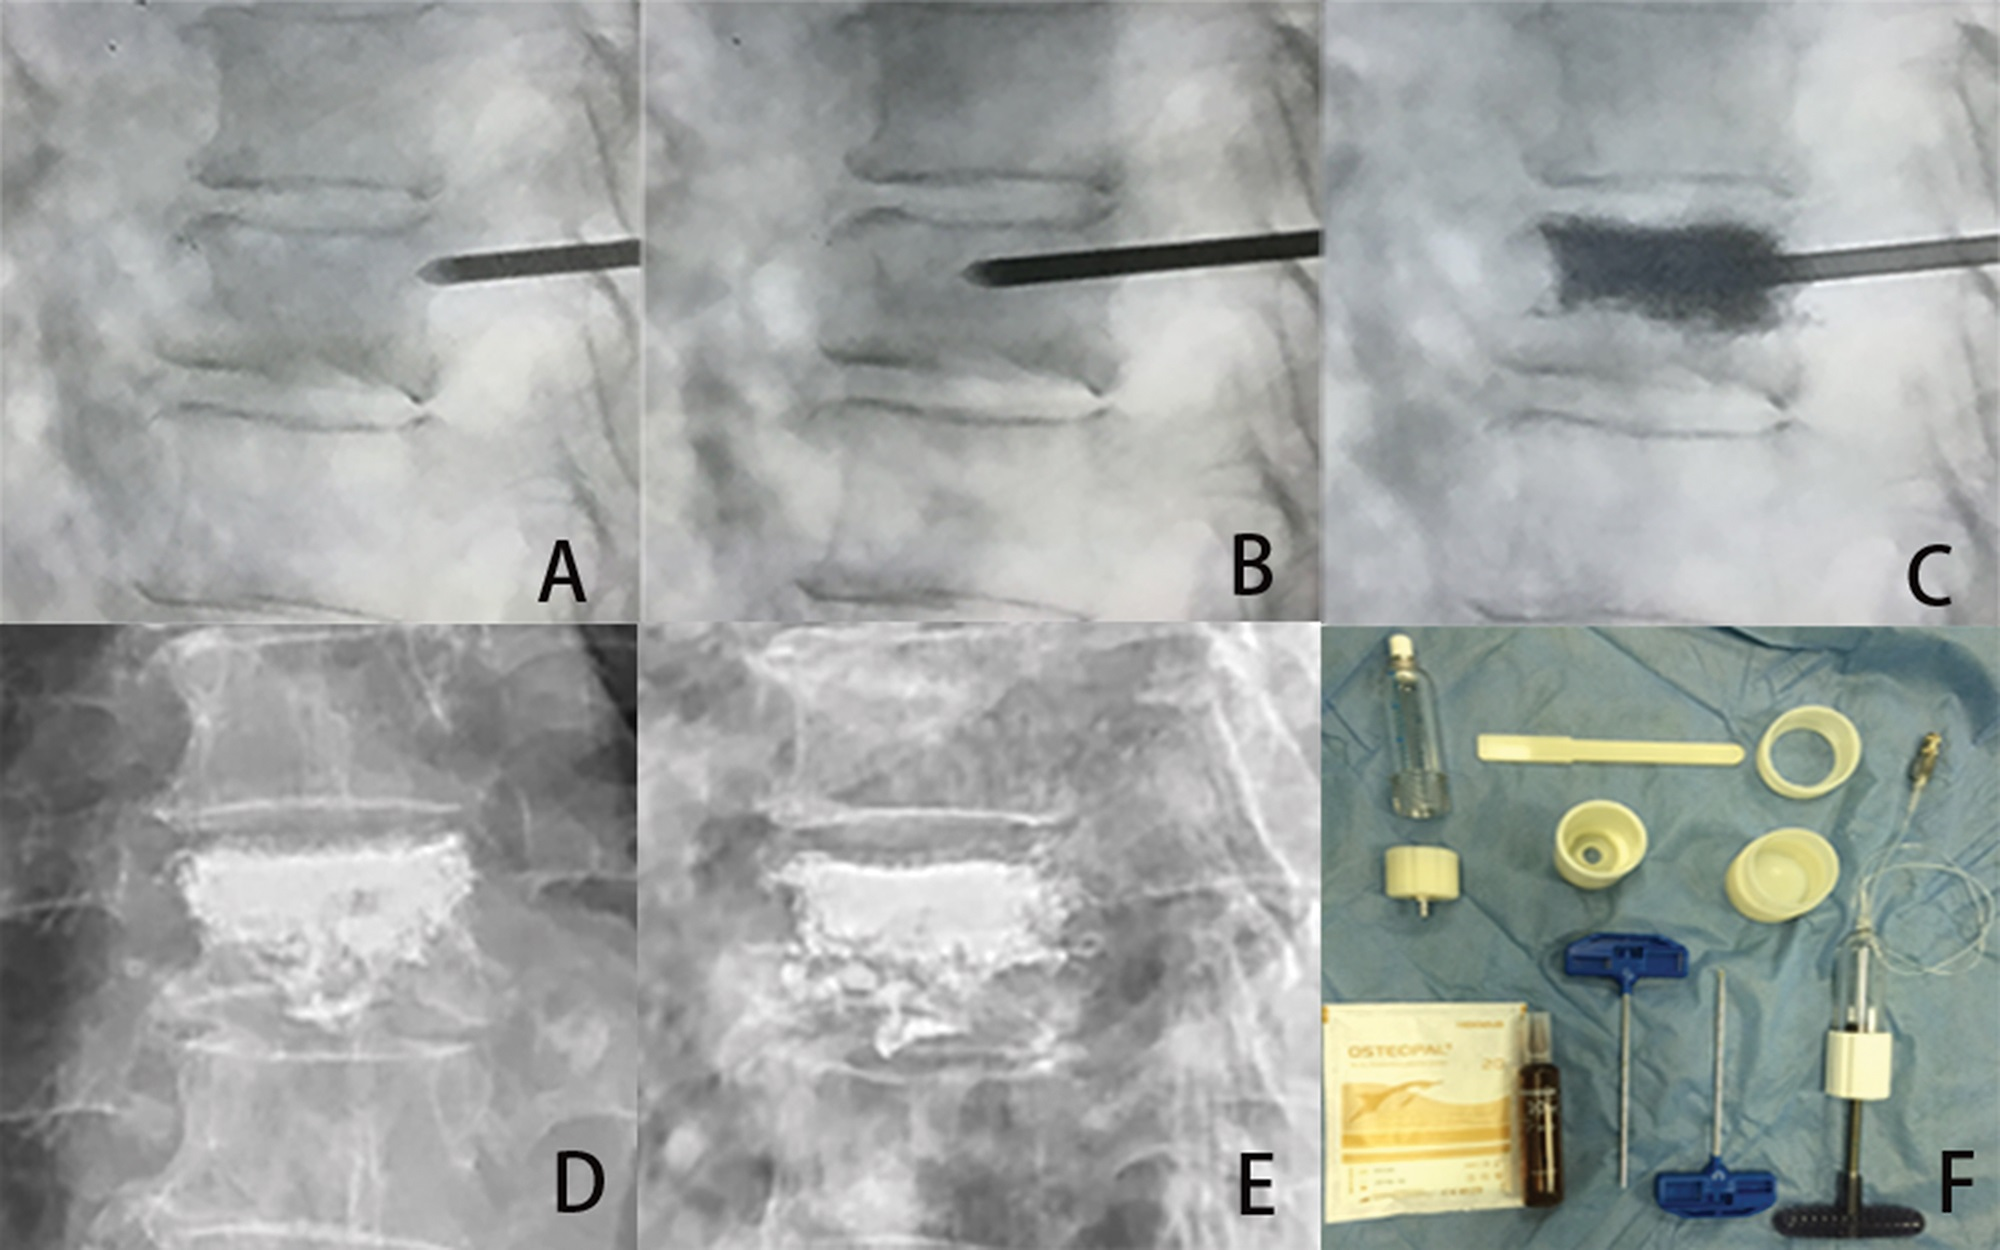 HPDS surgical procedure for the treatment of a 79-year-old female patient with T8 vertebral body fracture. A, A puncture needle enters into the fractured T8 vertebra via the left pedicle. B, Lateral radiograph showing the puncture needle tip in the anterior column of the vertebral body. C, High-viscosity bone cement is injected into the fractured vertebral body. The lateral radiograph shows the filling of the vertebral body with high-viscosity cement. D and E, Lateral and posterior-anterior X-ray films after the HPDS surgical procedure. F, The HPDS device and high-viscosity cement.